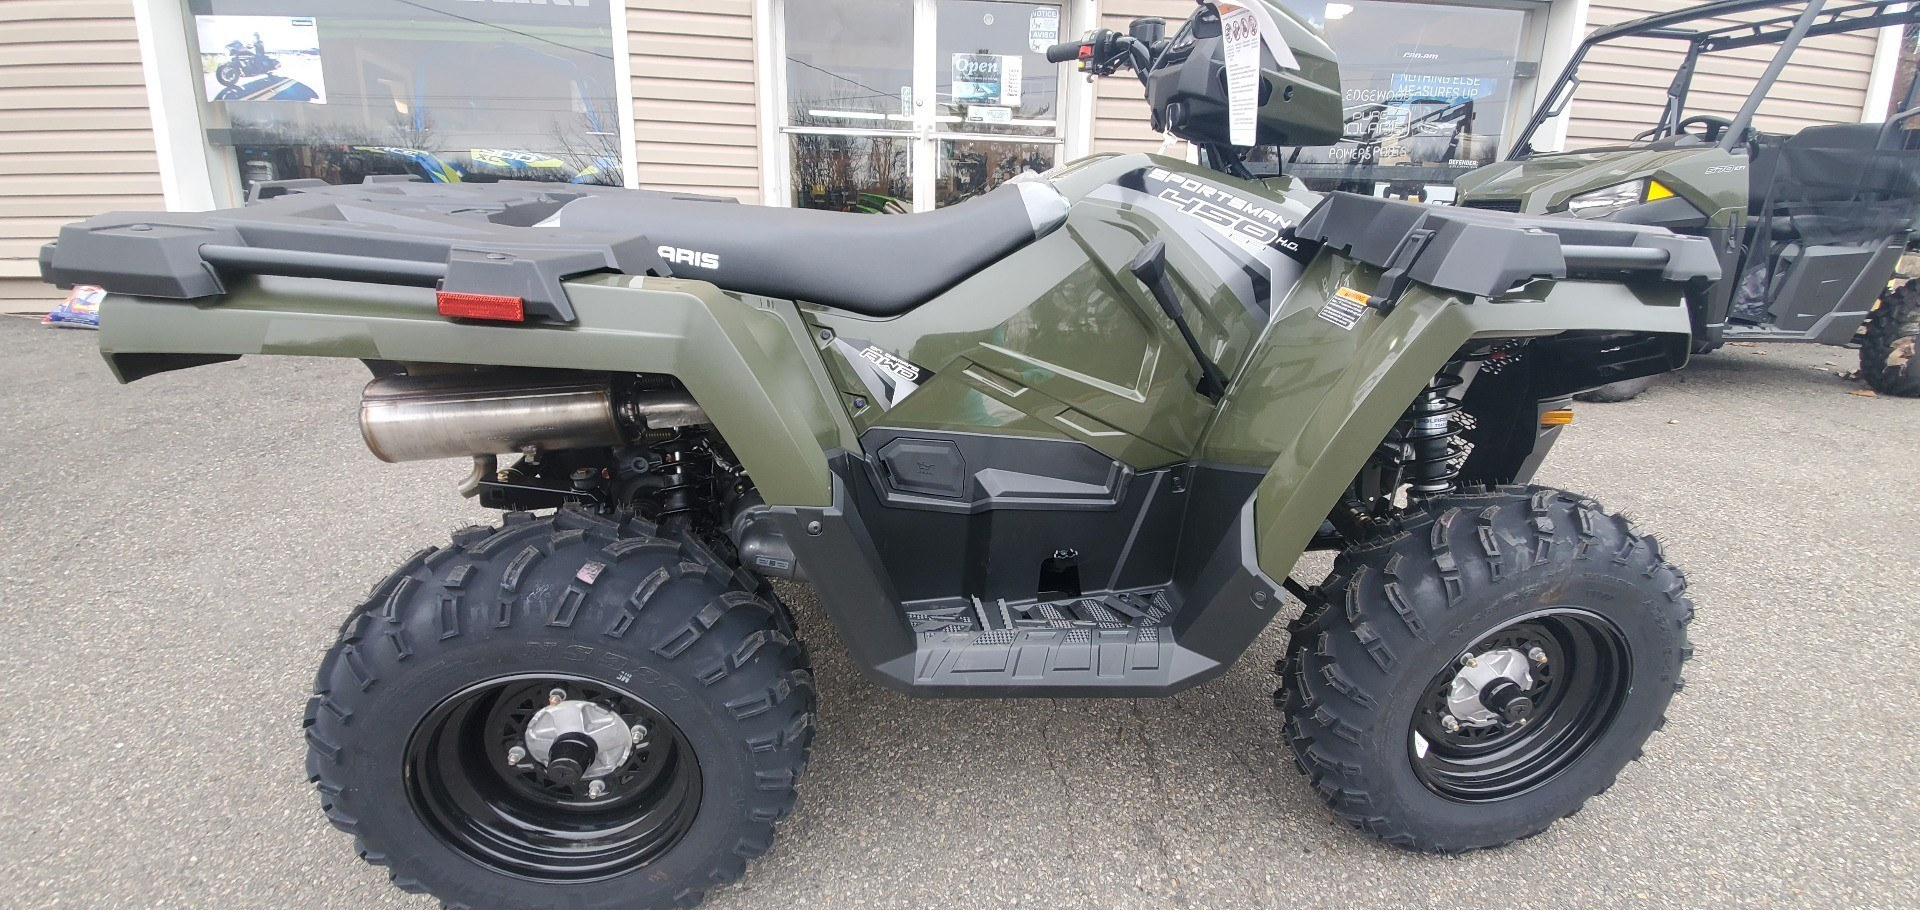 2020 Polaris Sportsman 450 H.O. in Ledgewood, New Jersey - Photo 2